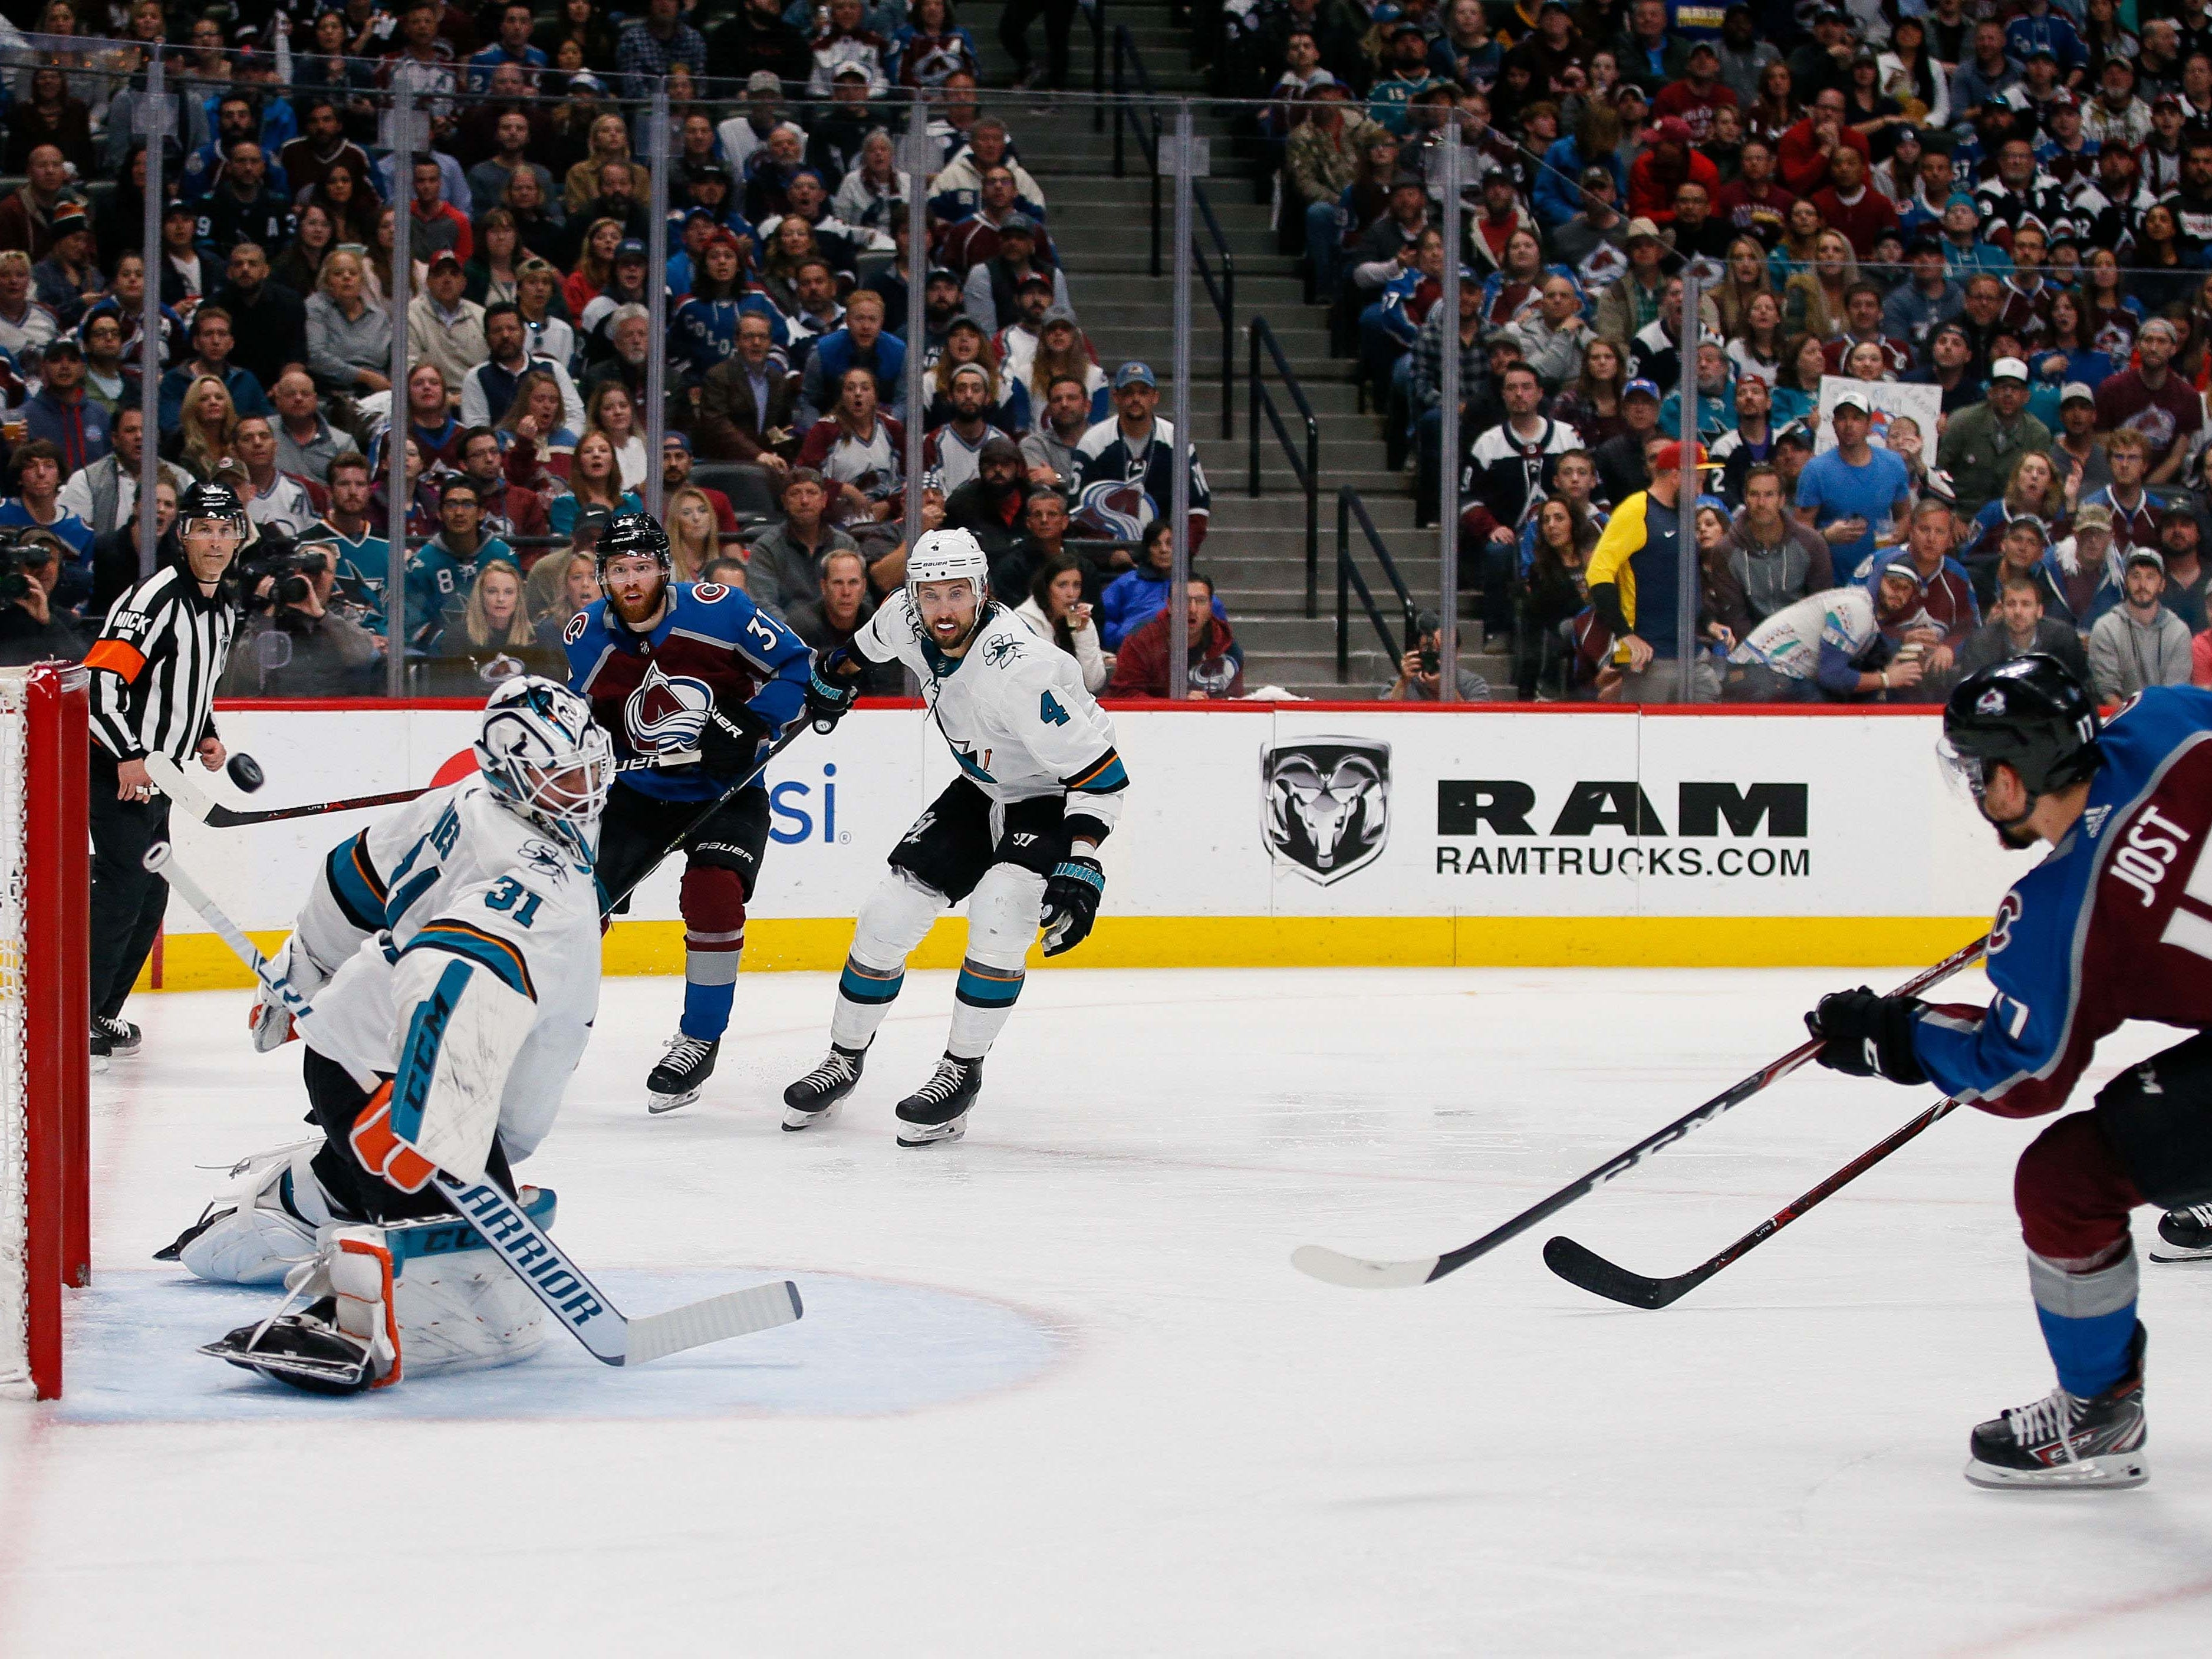 Second round: Colorado Avalanche center Tyson Jost (17) scores a goal past San Jose Sharks goaltender Martin Jones  in the second period Game 6 at the Pepsi Center.